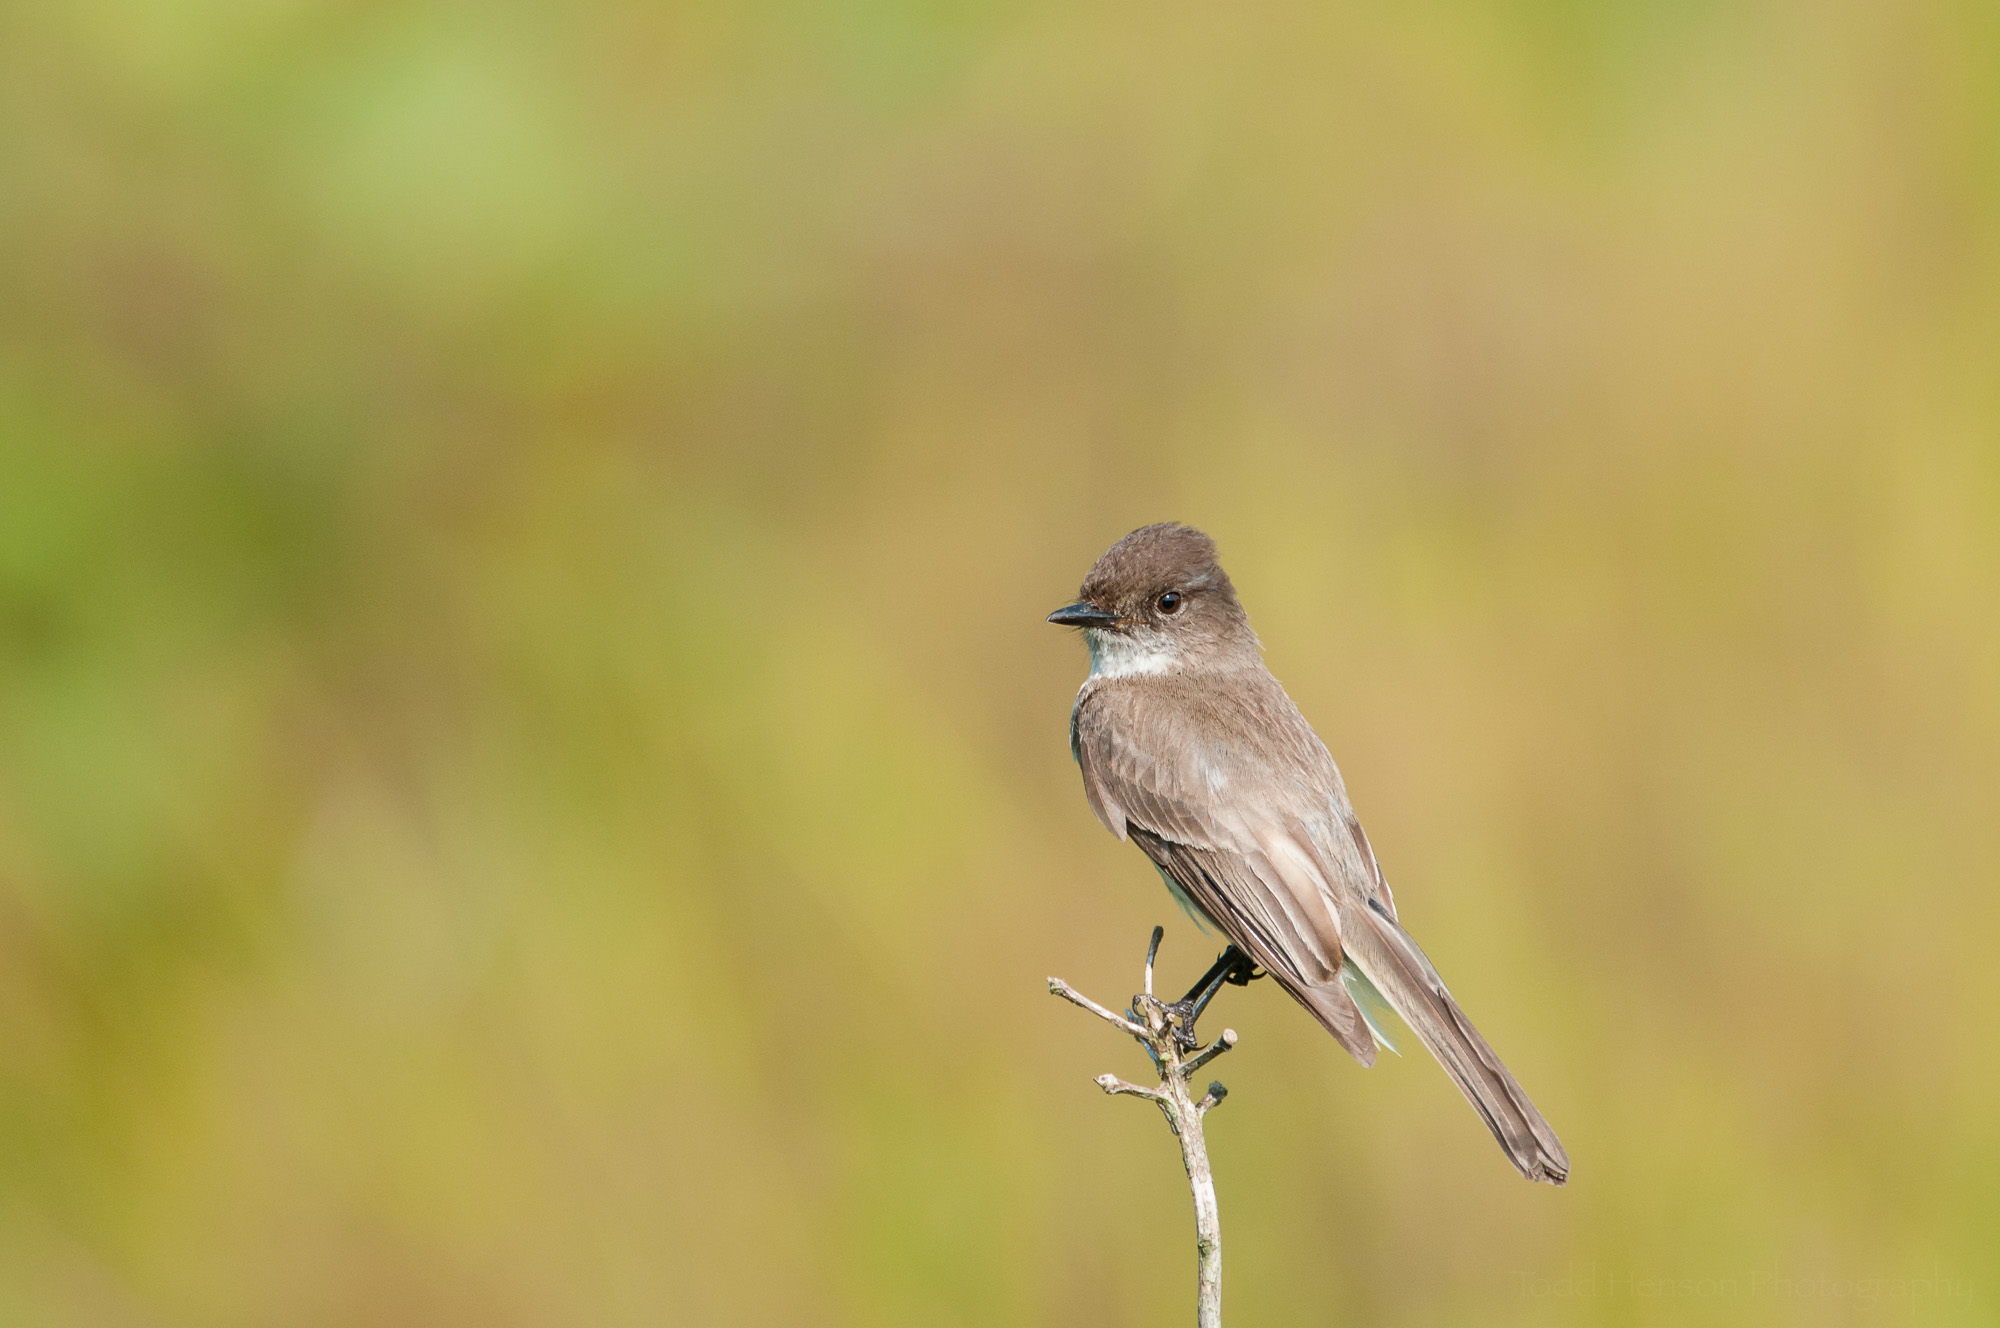 Eastern Phoebe tilting its head towards the camera